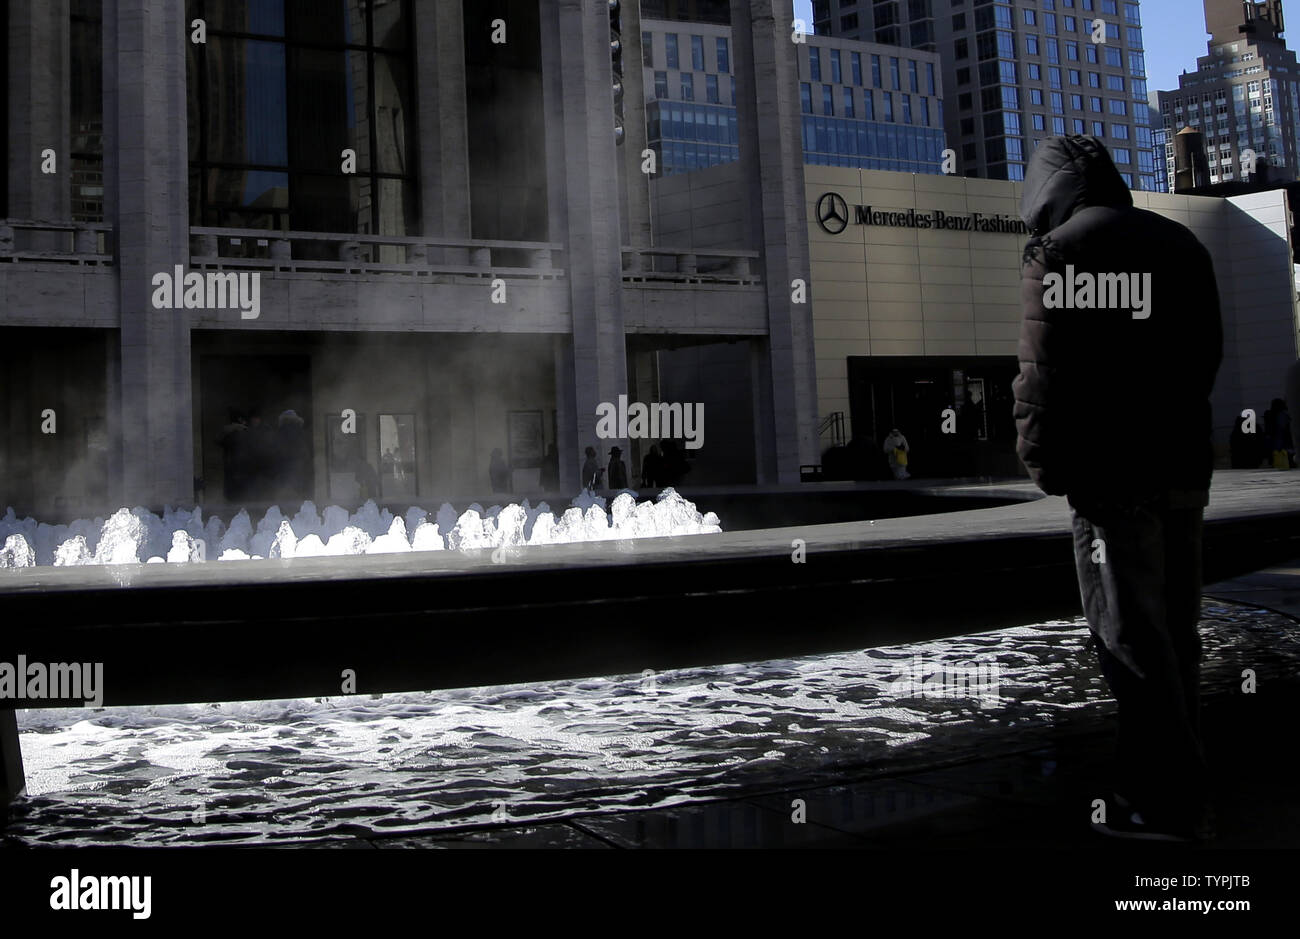 Steam rises off of the fountains outside of Lincoln Center during the week of Mercedes-Benz Fashion Week Fall 2015 in New York City on February 13, 2015. Temperatures fell into the teens in New York with snow expected tomorrow through Sunday.      Photo by John Angelillo/UPI - Stock Image